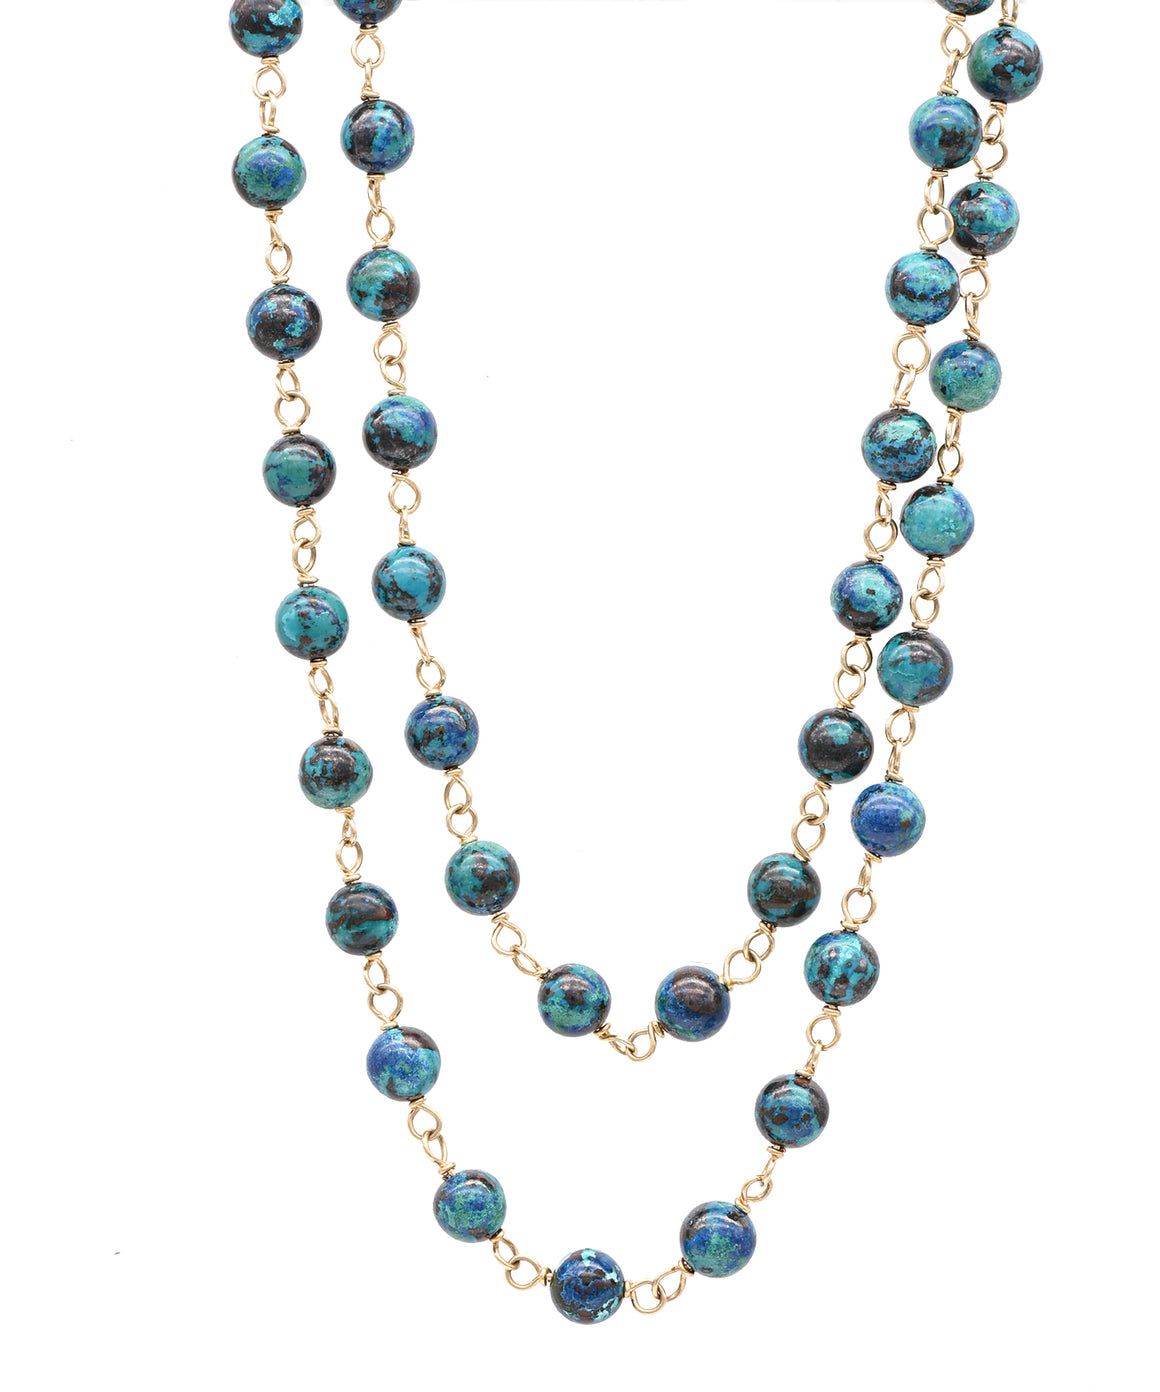 Chrysocolla Bead Necklace - Lesley Ann Jewels